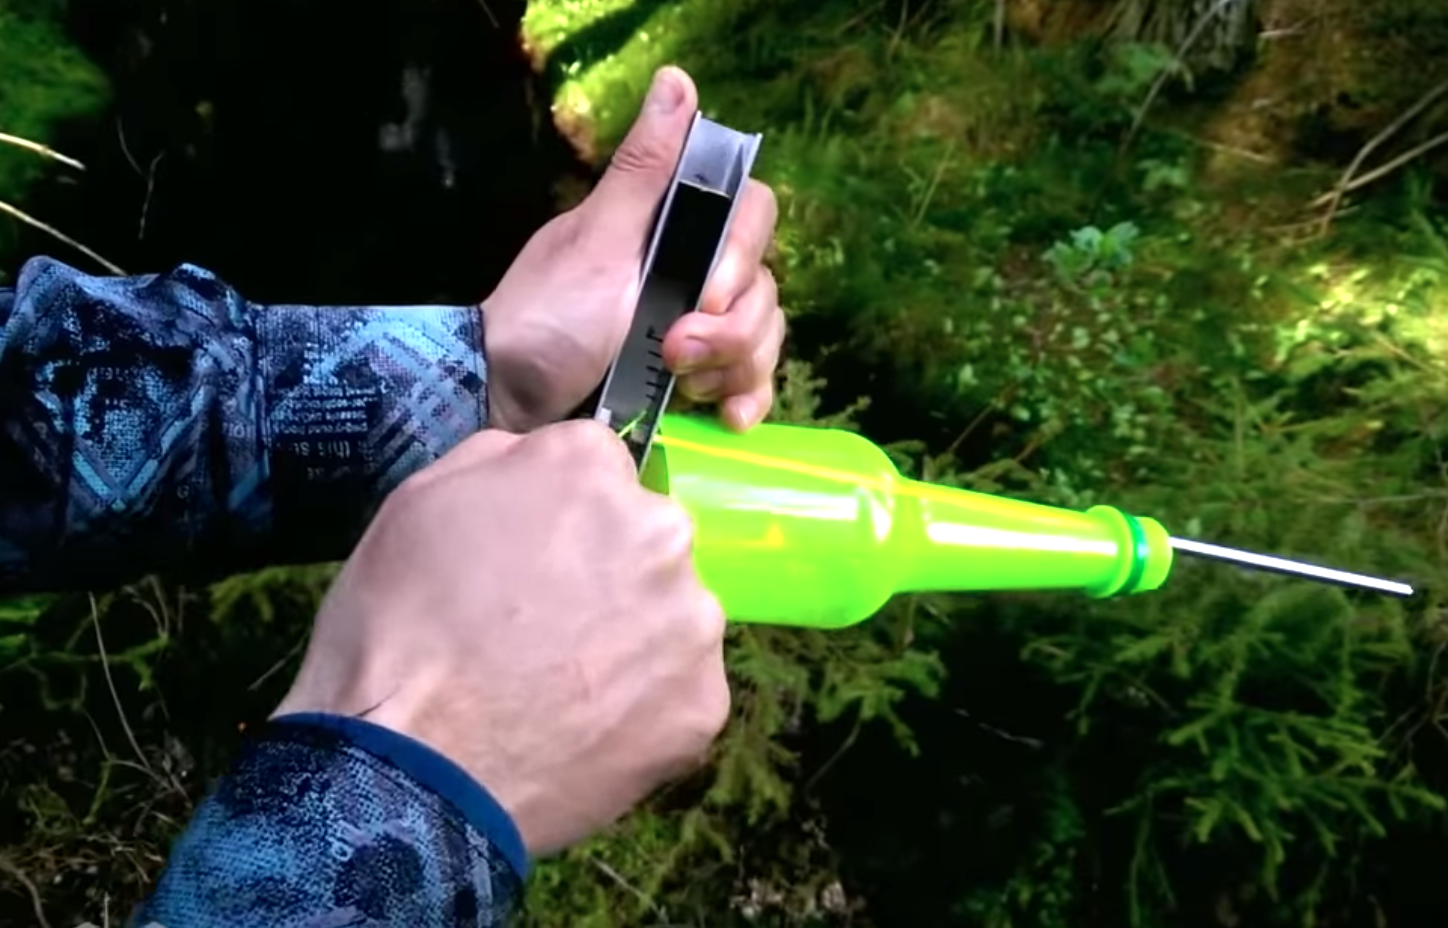 Russian Man Demonstrates How To Fish In The Wild Using A Plastic Bottle